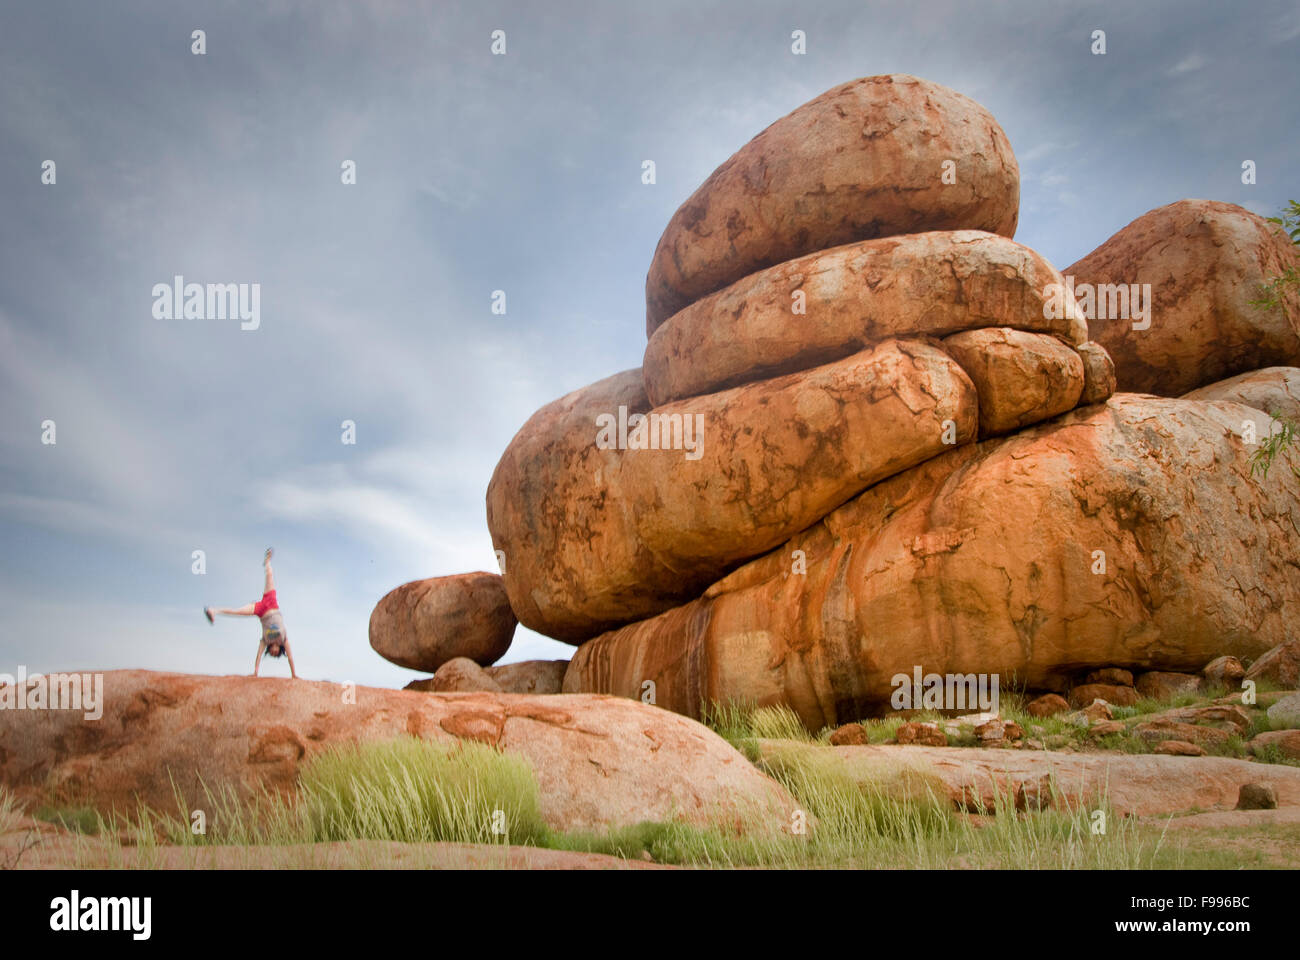 Karlu Karlu (also known as 'The Devil's Marbles') is an Aboriginal Site and stopping point for tourists - Stock Image